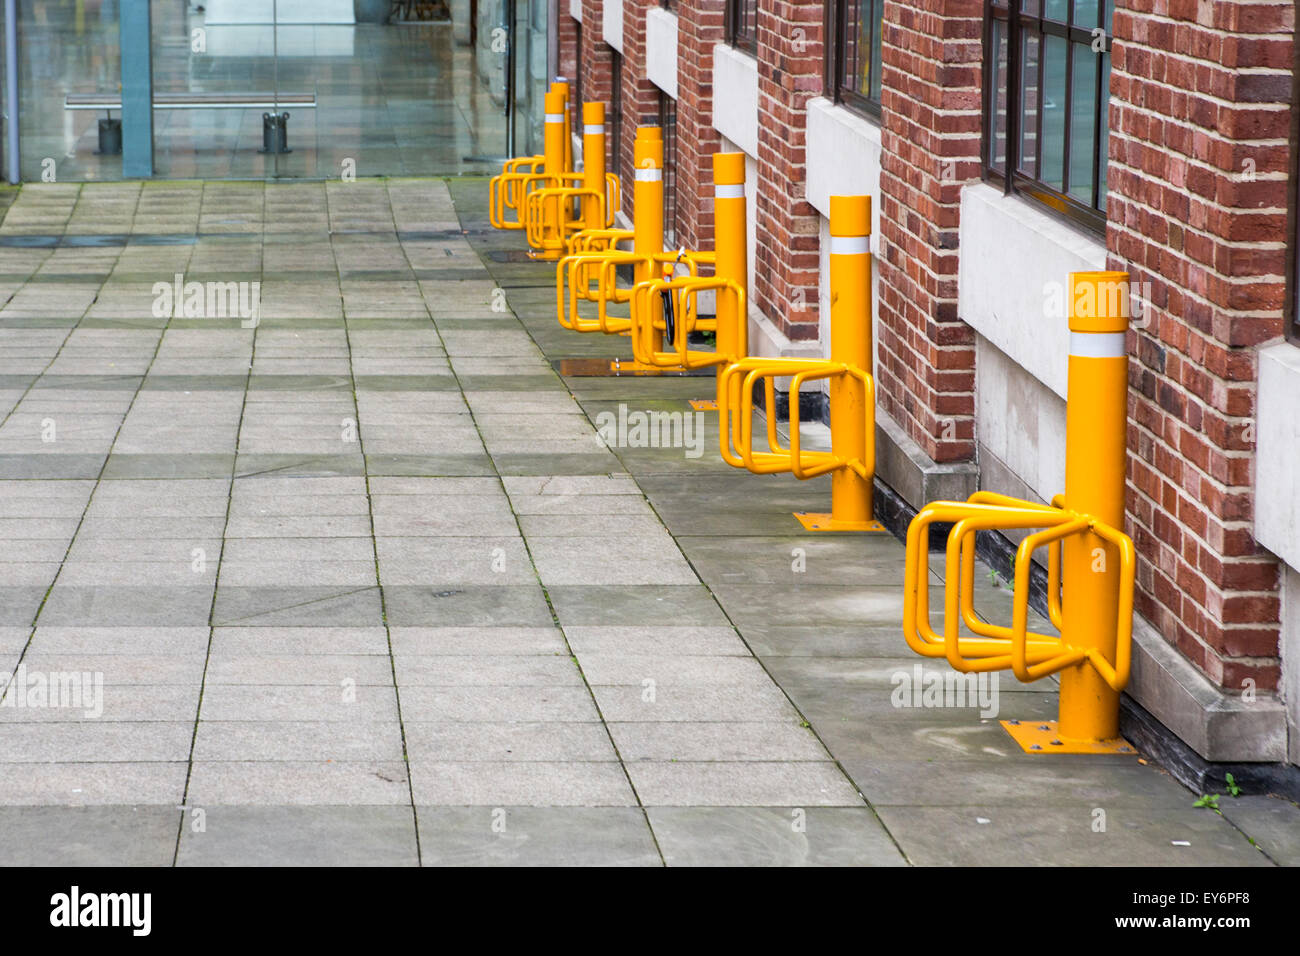 BHZ Yellow bicycle parking in Leeds city centre, UK. - Stock Image